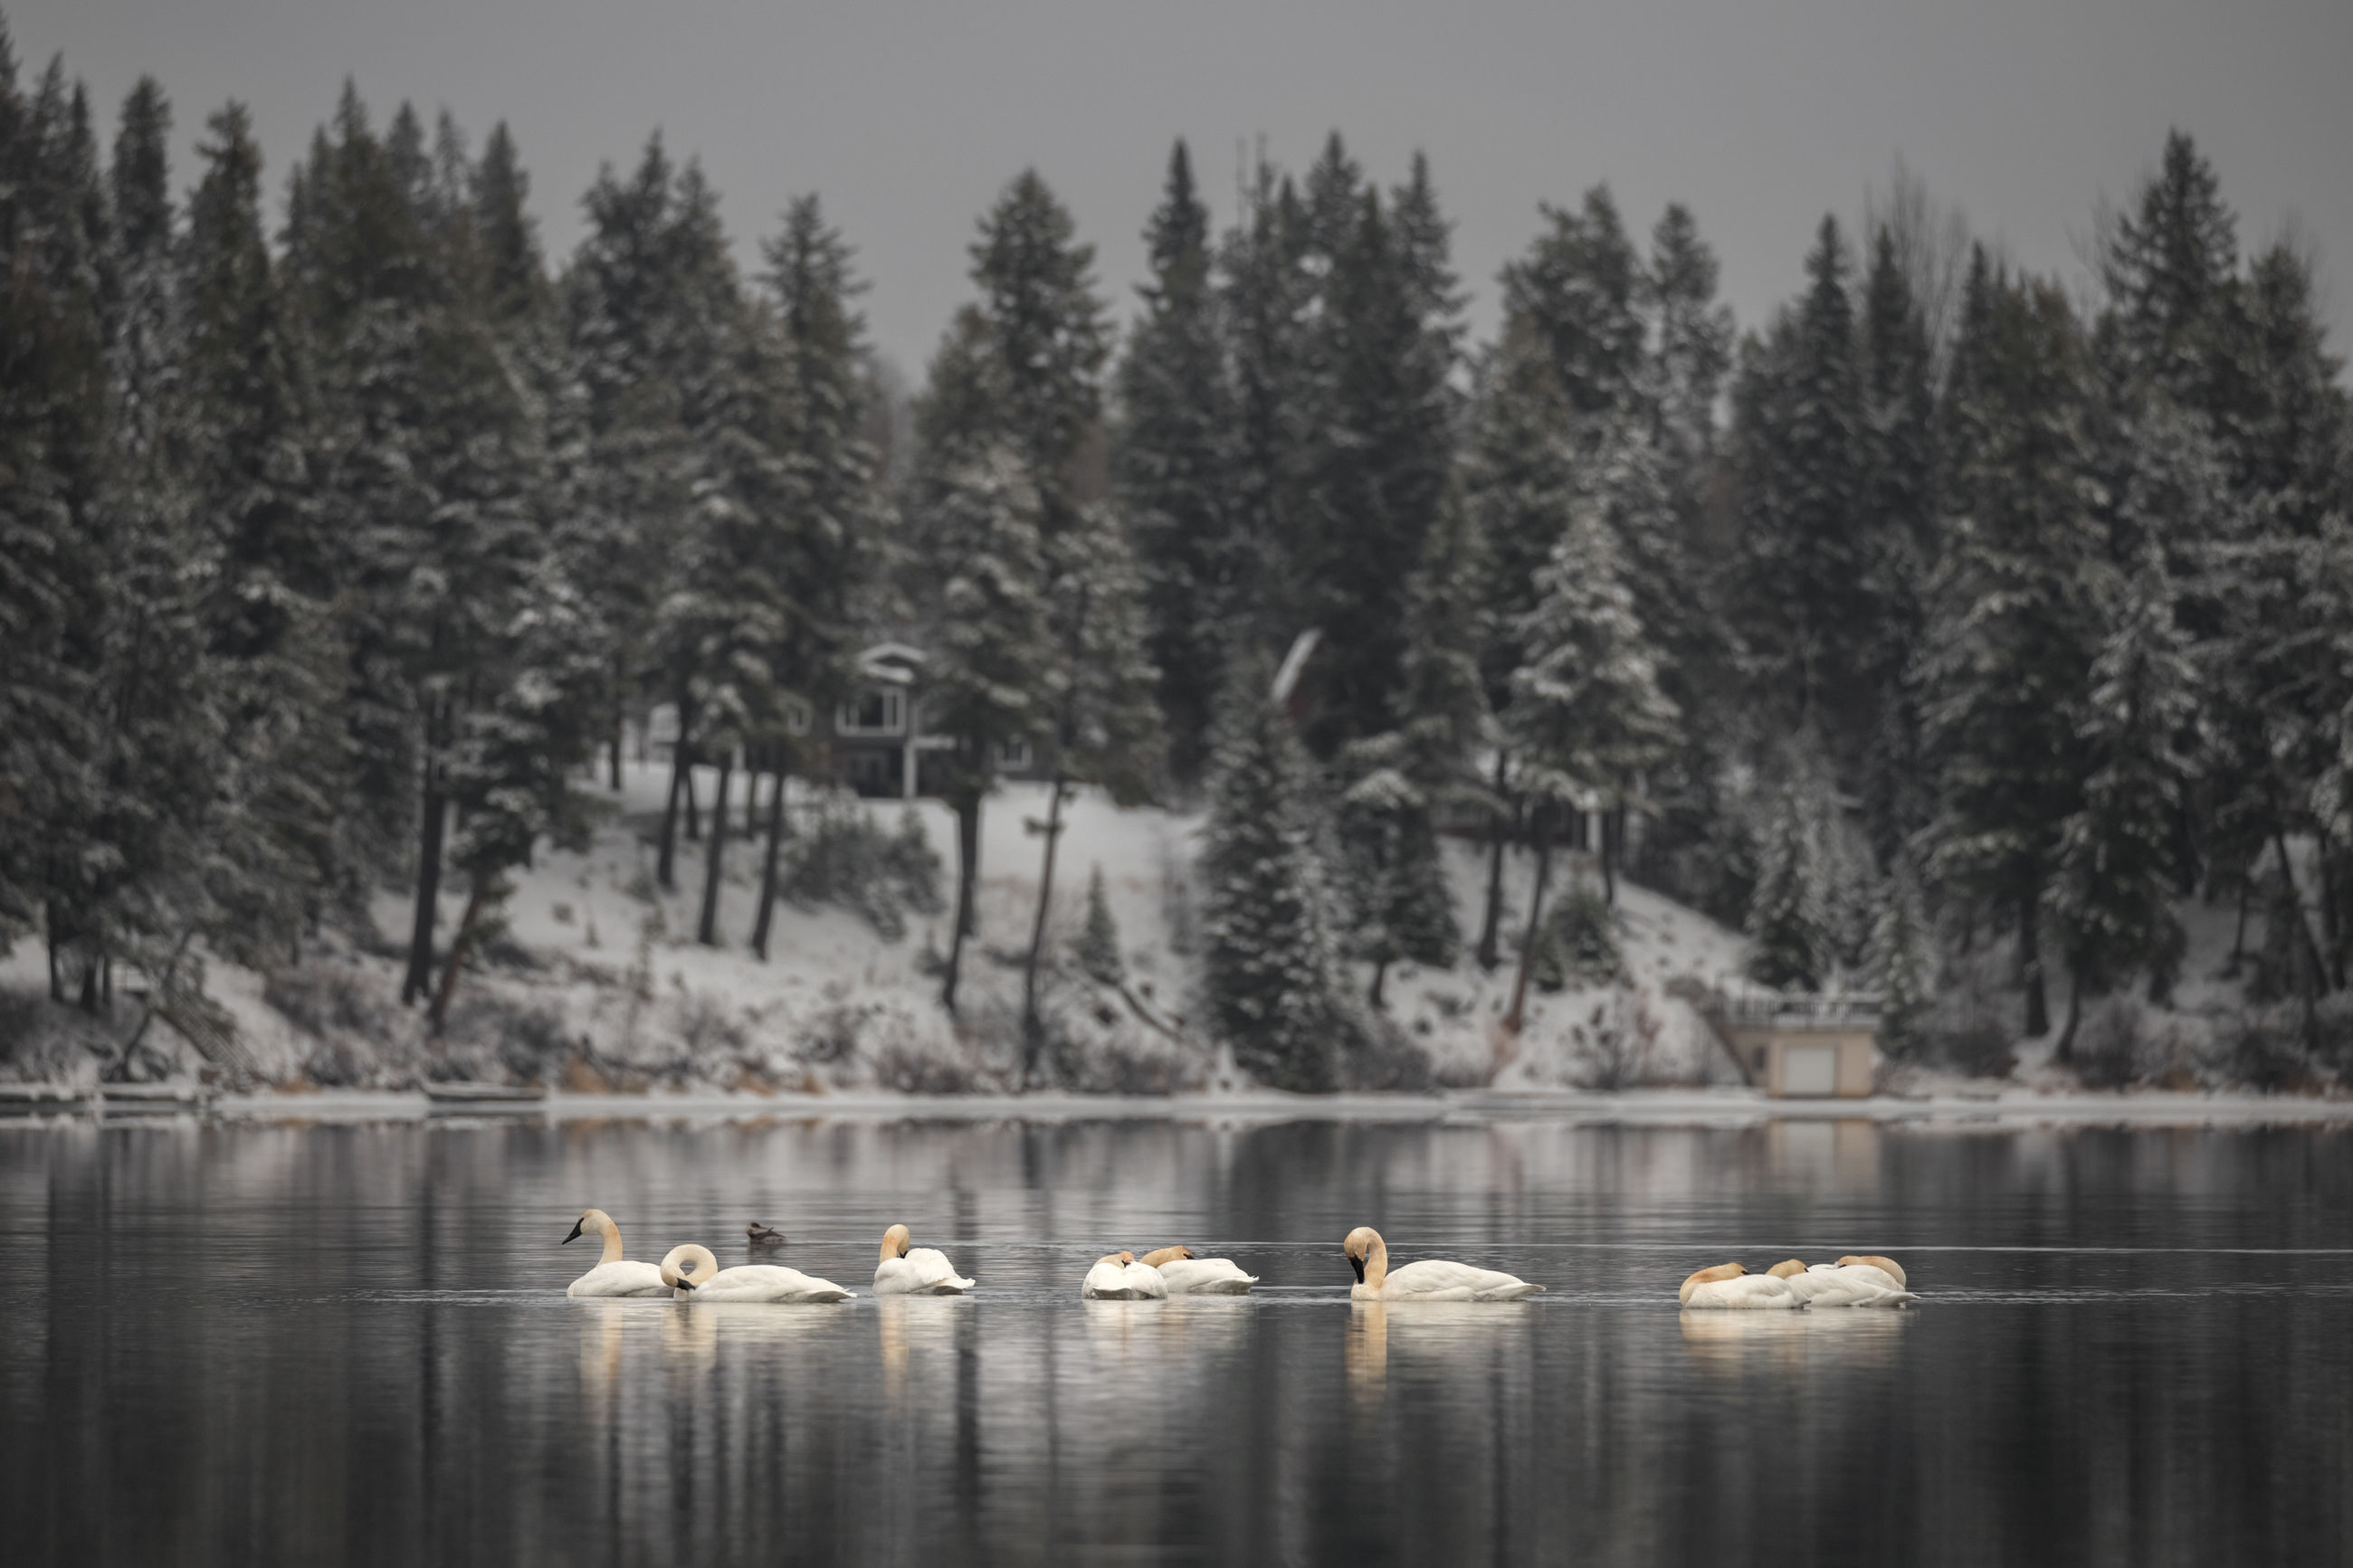 Swans swimming in lake against trees during winter